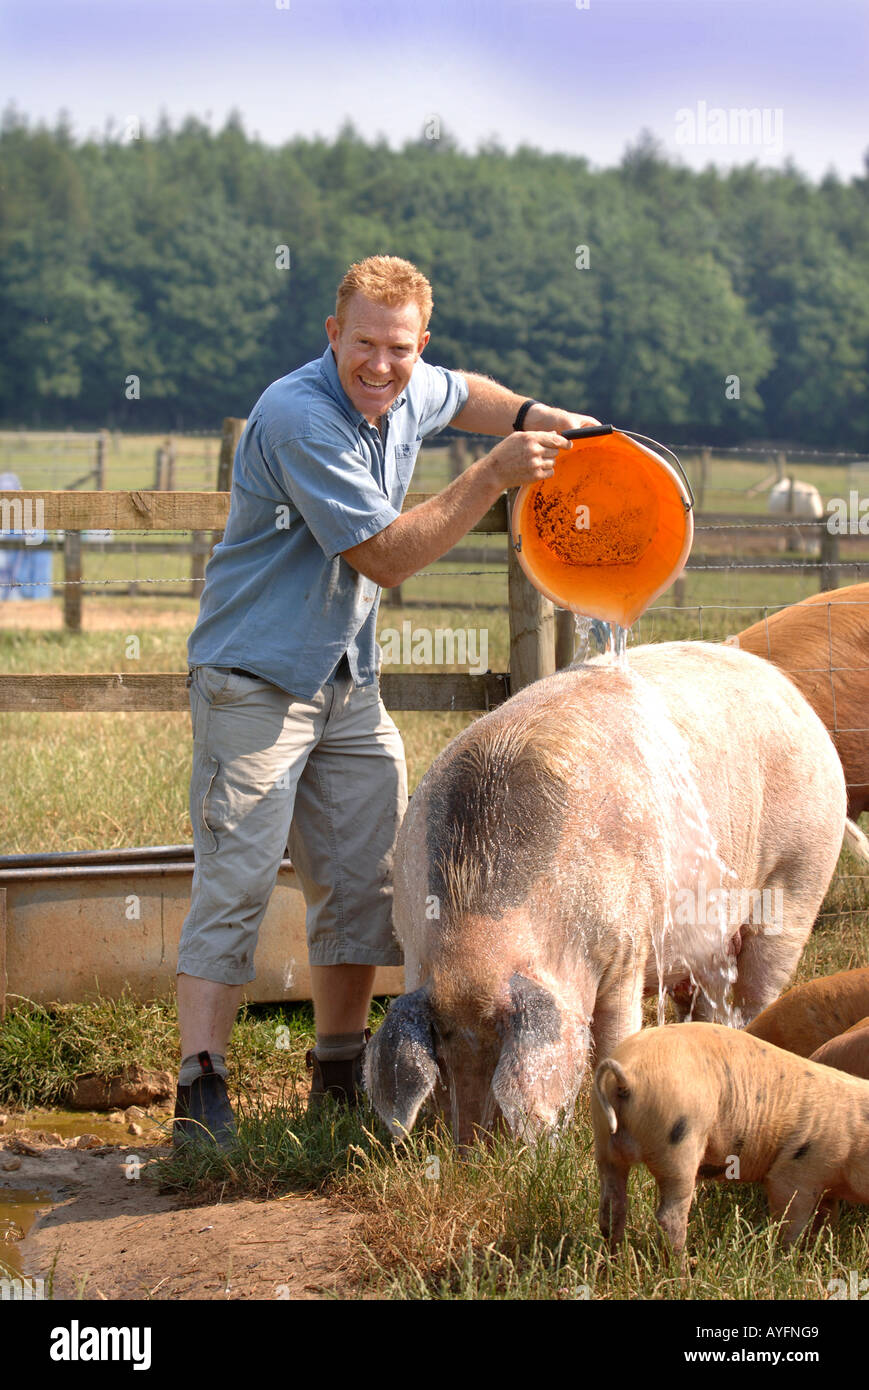 COUNTRYFILE TV PRESENTER AND OWNER OF THE COTSWOLD FARM PARK ADAM HENSON - Stock Image